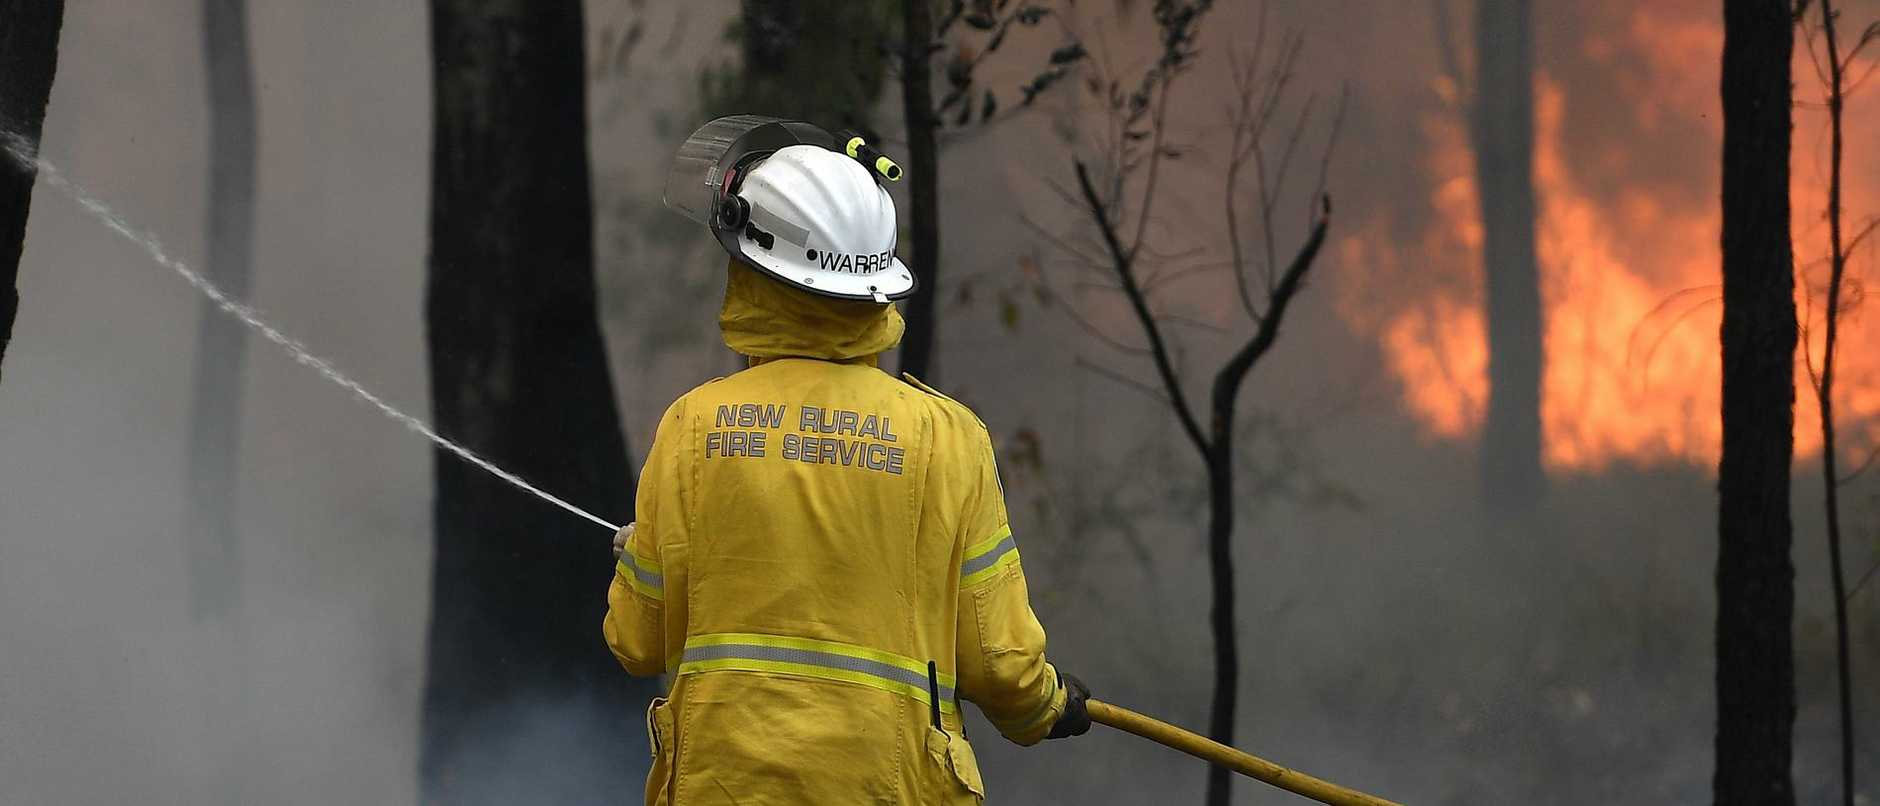 New data released by a peak sentencing body shows children as young as 10 years old are committing arson, as firefighters battle bushfires across country.